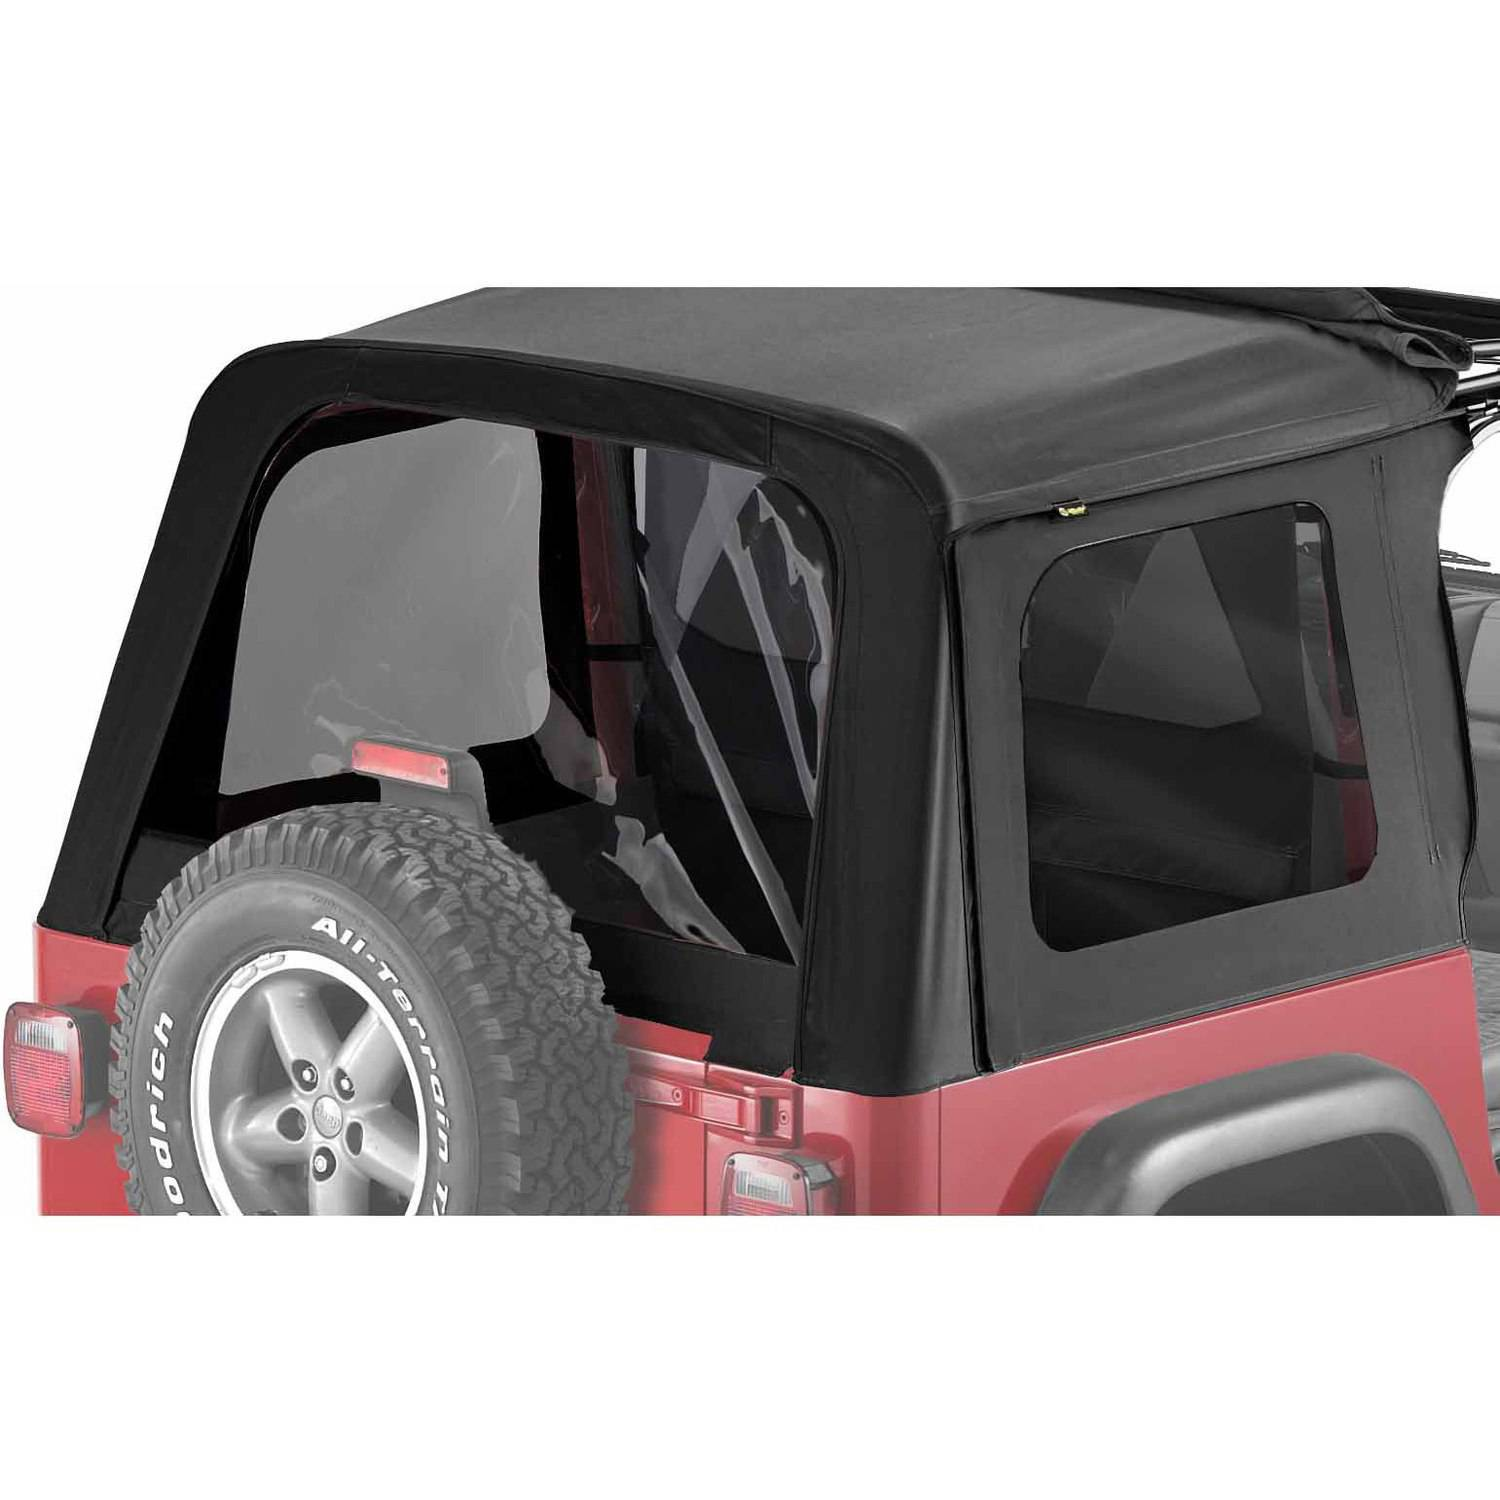 Bestop 587 Jeep Wrangler Tinted Window Kit, Black Denim by Bestop